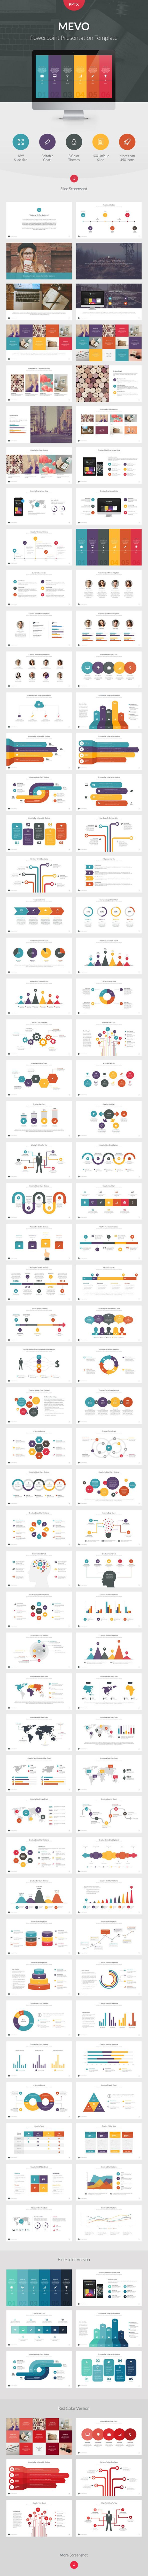 Mevo powerpoint presentation template powerpoint templates inspirace mevo powerpoint presentation template powerpoint templates toneelgroepblik Choice Image